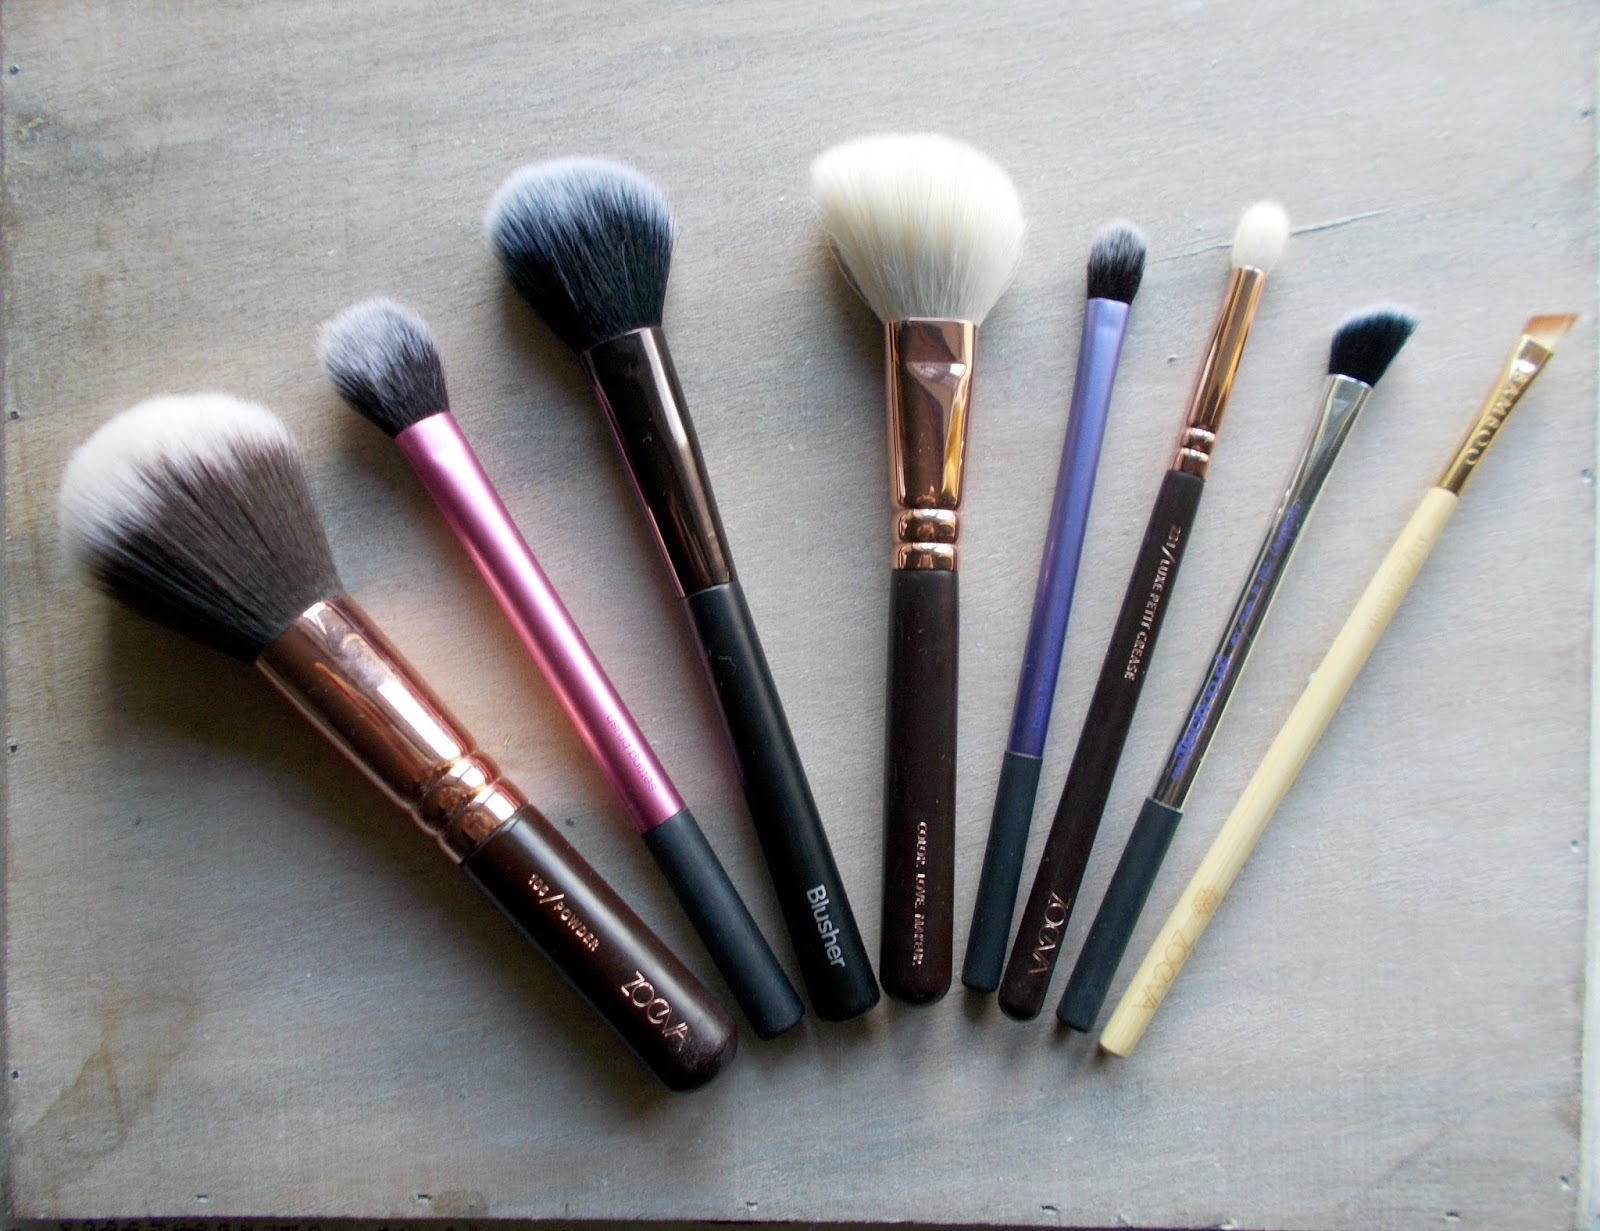 favourite makeup brushes zoeva real techniques no7 boots